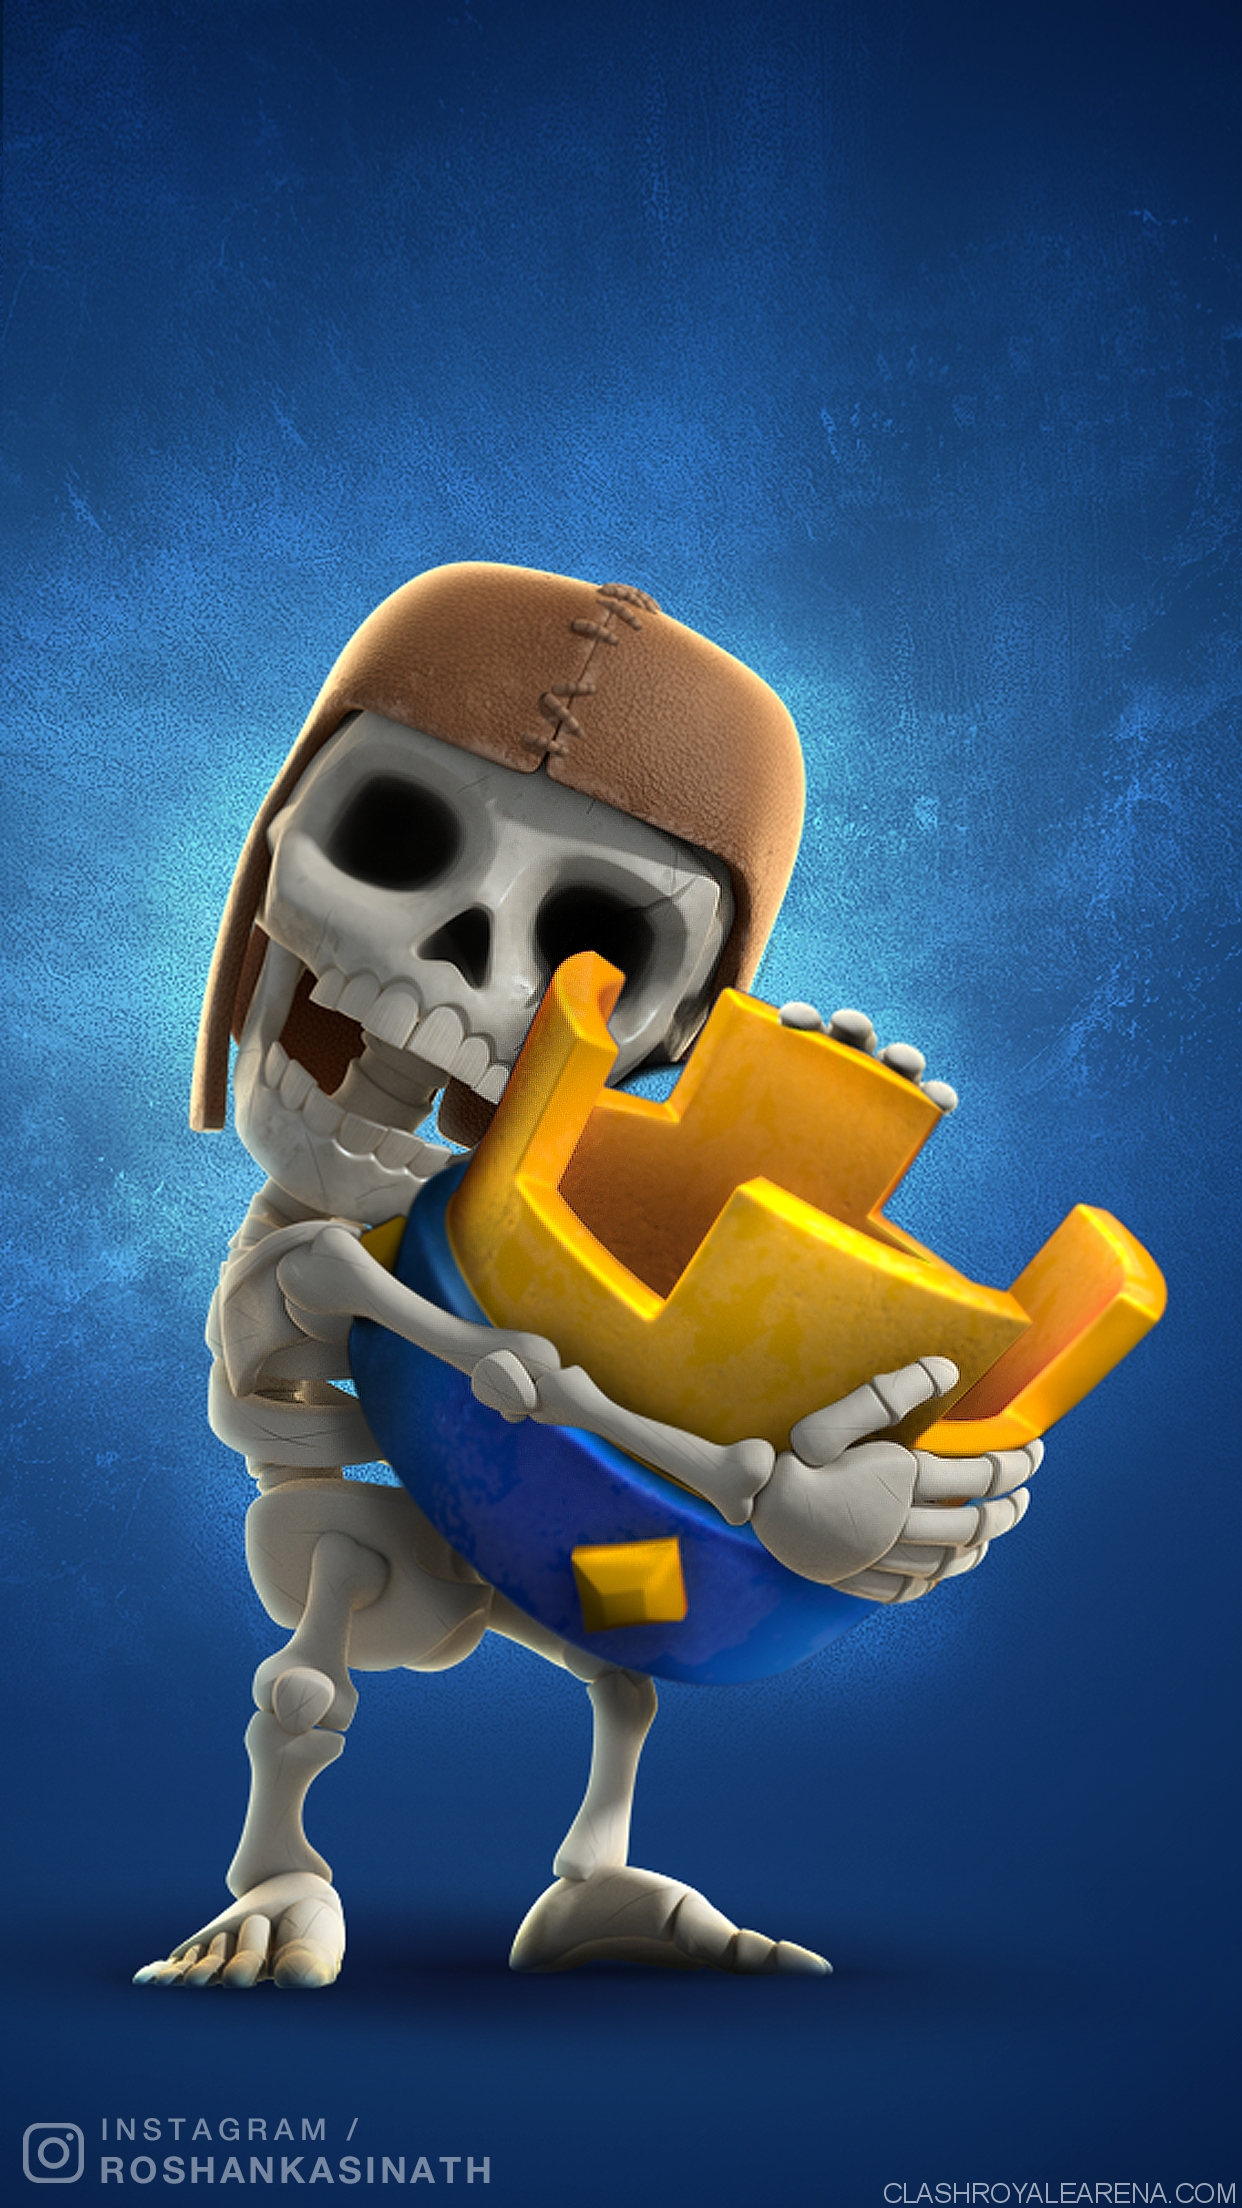 clash royale wallpaper collection | clash royale guides